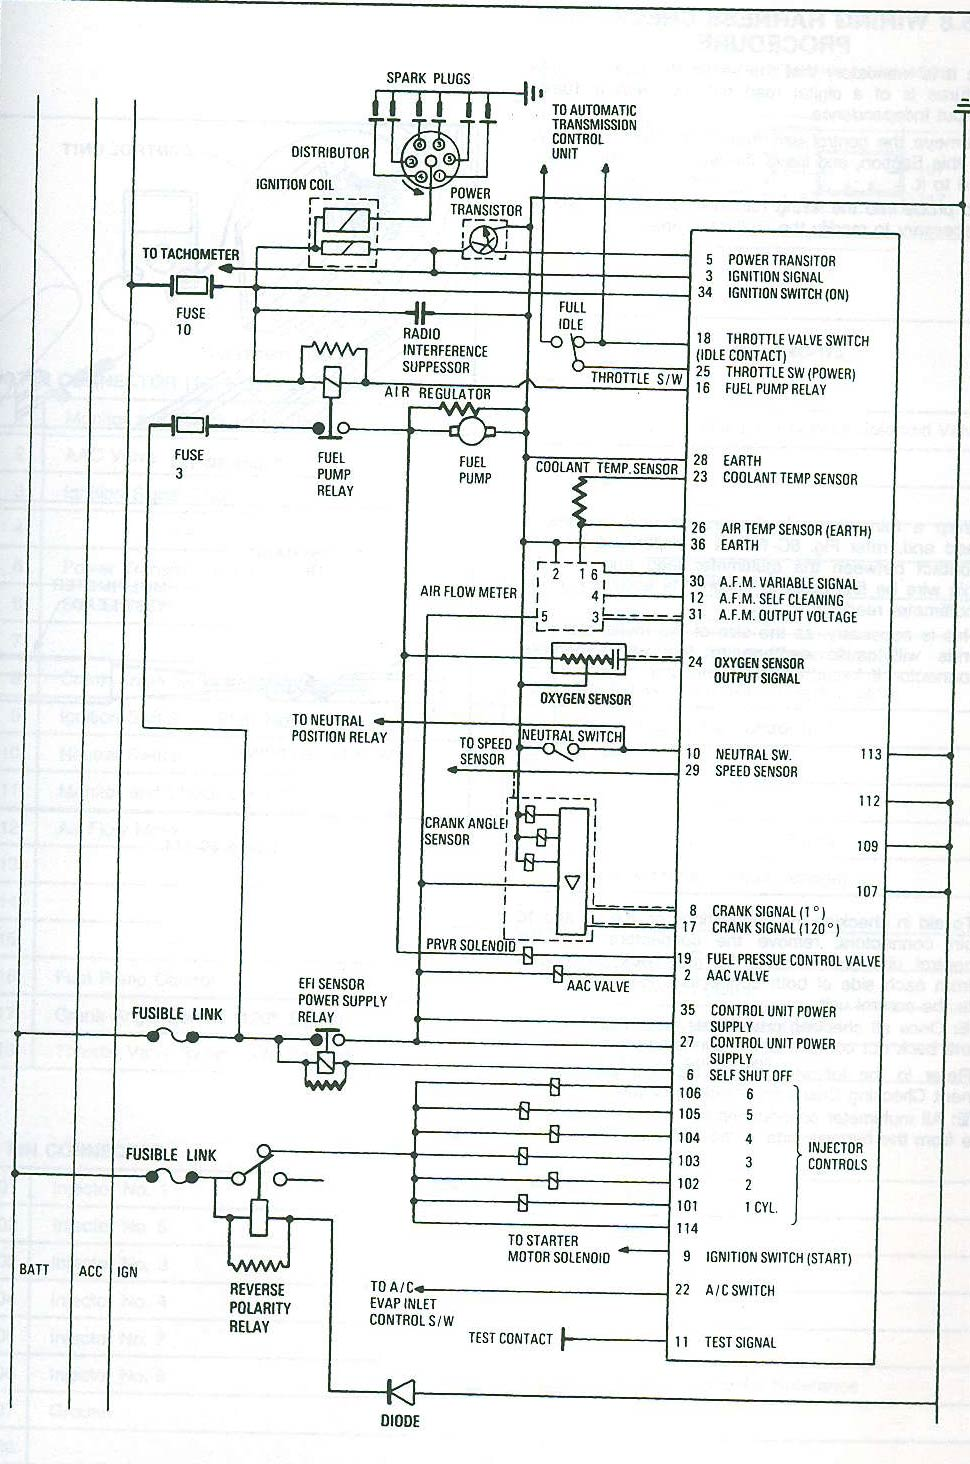 Nissan Patrol Y60 Wiring Diagram Starting Know About 1986 Corvette Fuel Pump